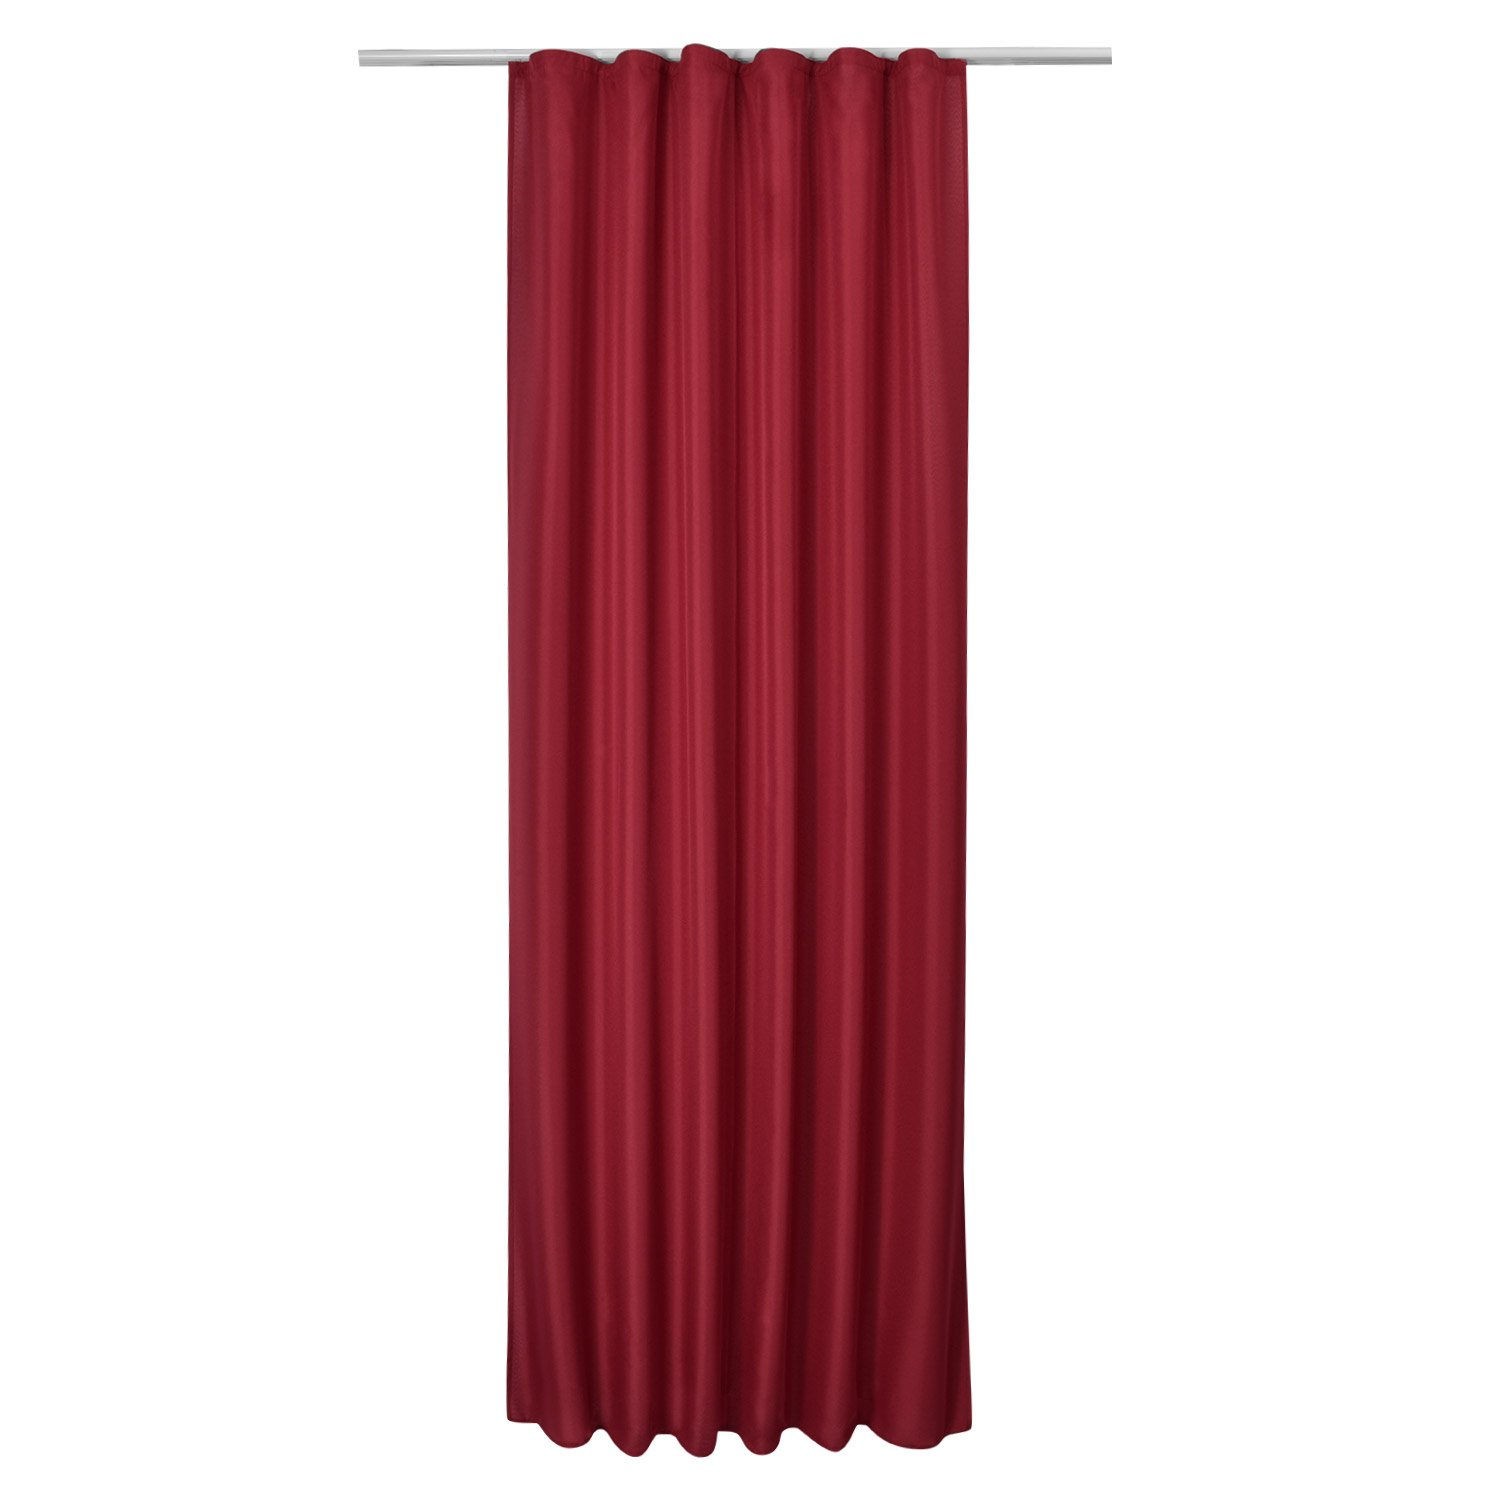 Beautissu Opaque Ribbon-Curtain Amelie 140 cm 245 cm Drop Black Decorative Drape with Ribbon Window-Scarf